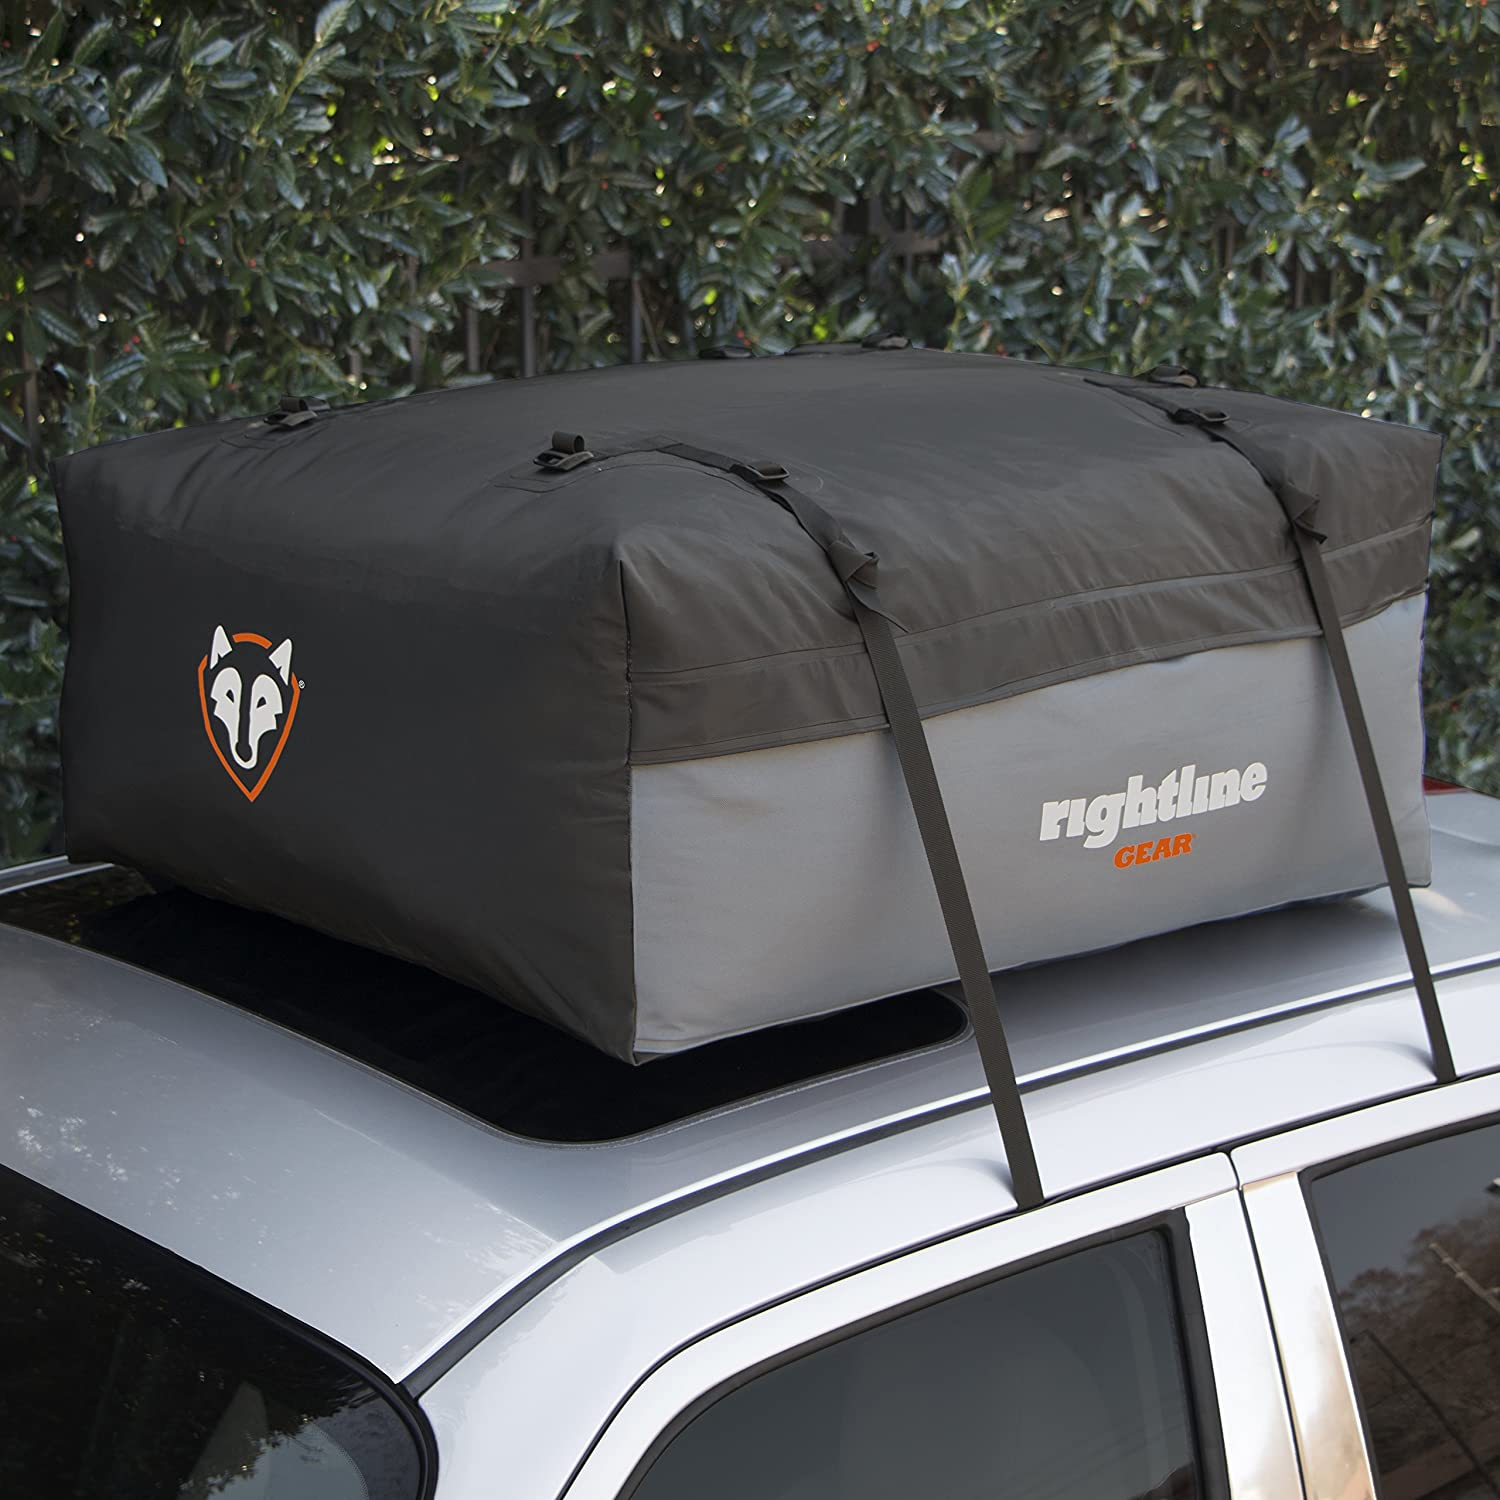 Attaches With or Without Roof Rack 100S50 9 cu ft Sized for Compact Cars 100/% Waterproof Rightline Gear Sport Jr Top Carrier